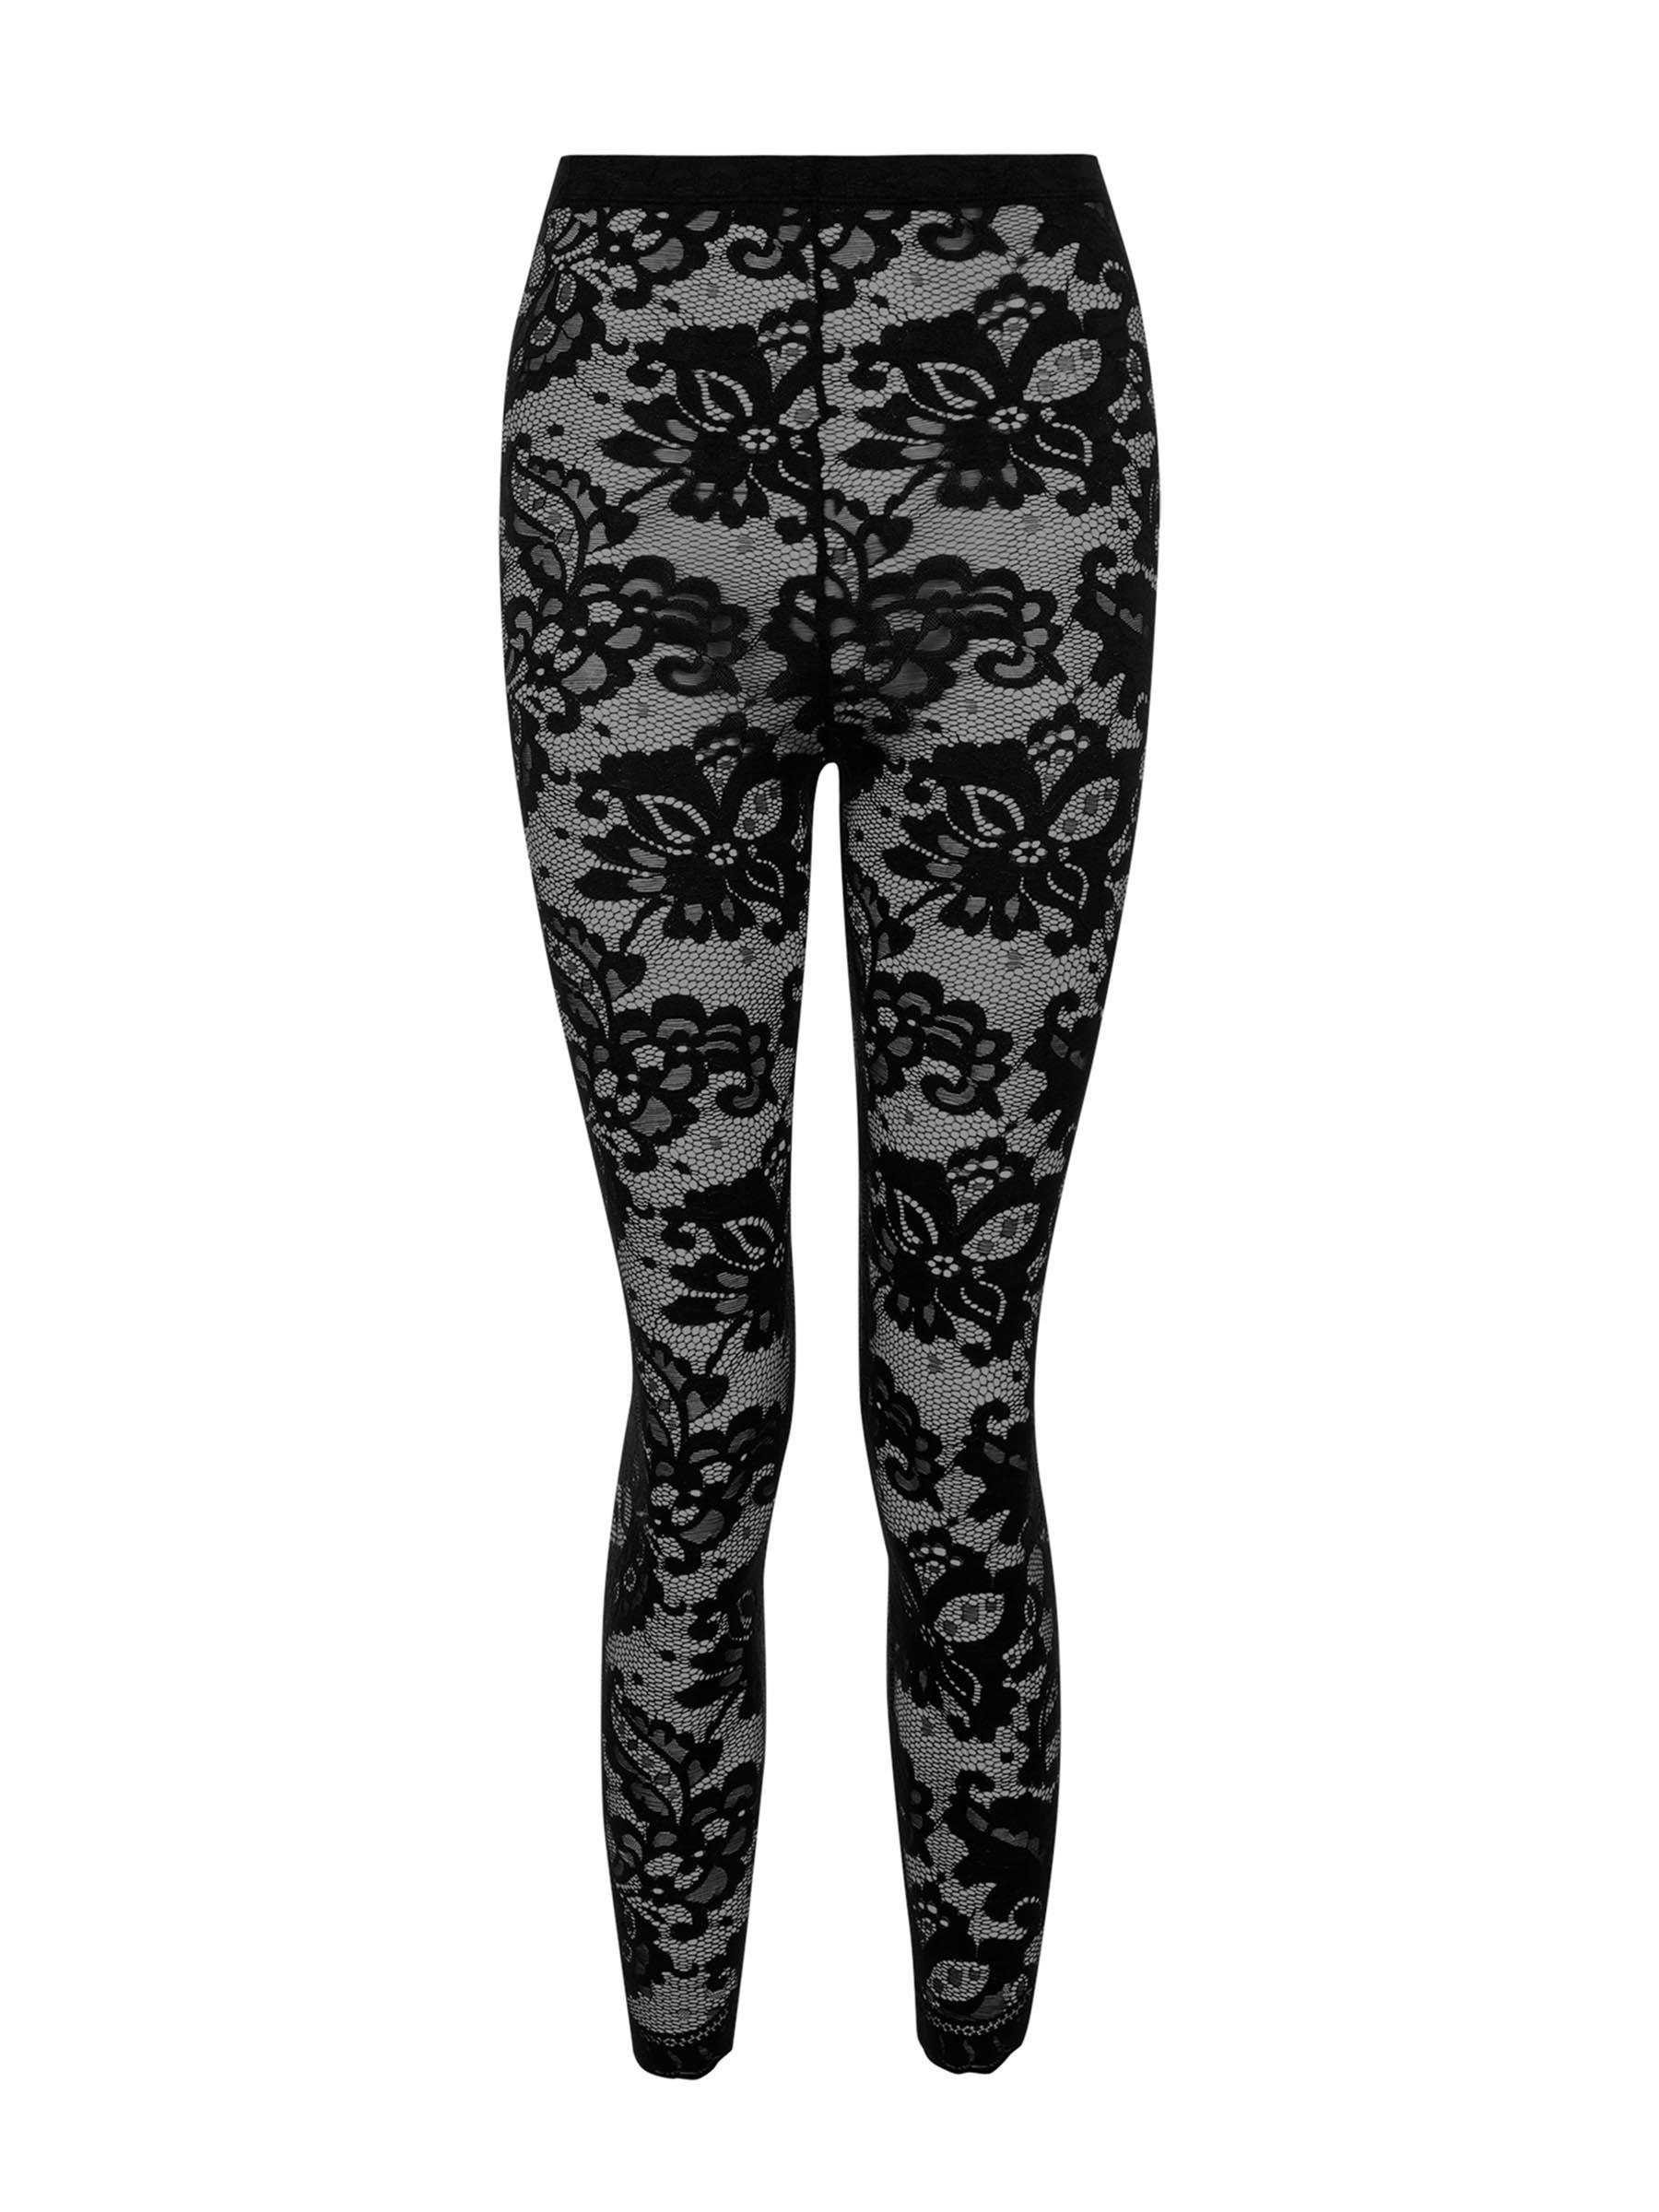 Shop eBay for great deals on Women's Lace Leggings. You'll find new or used products in Women's Lace Leggings on eBay. Free shipping on selected items.